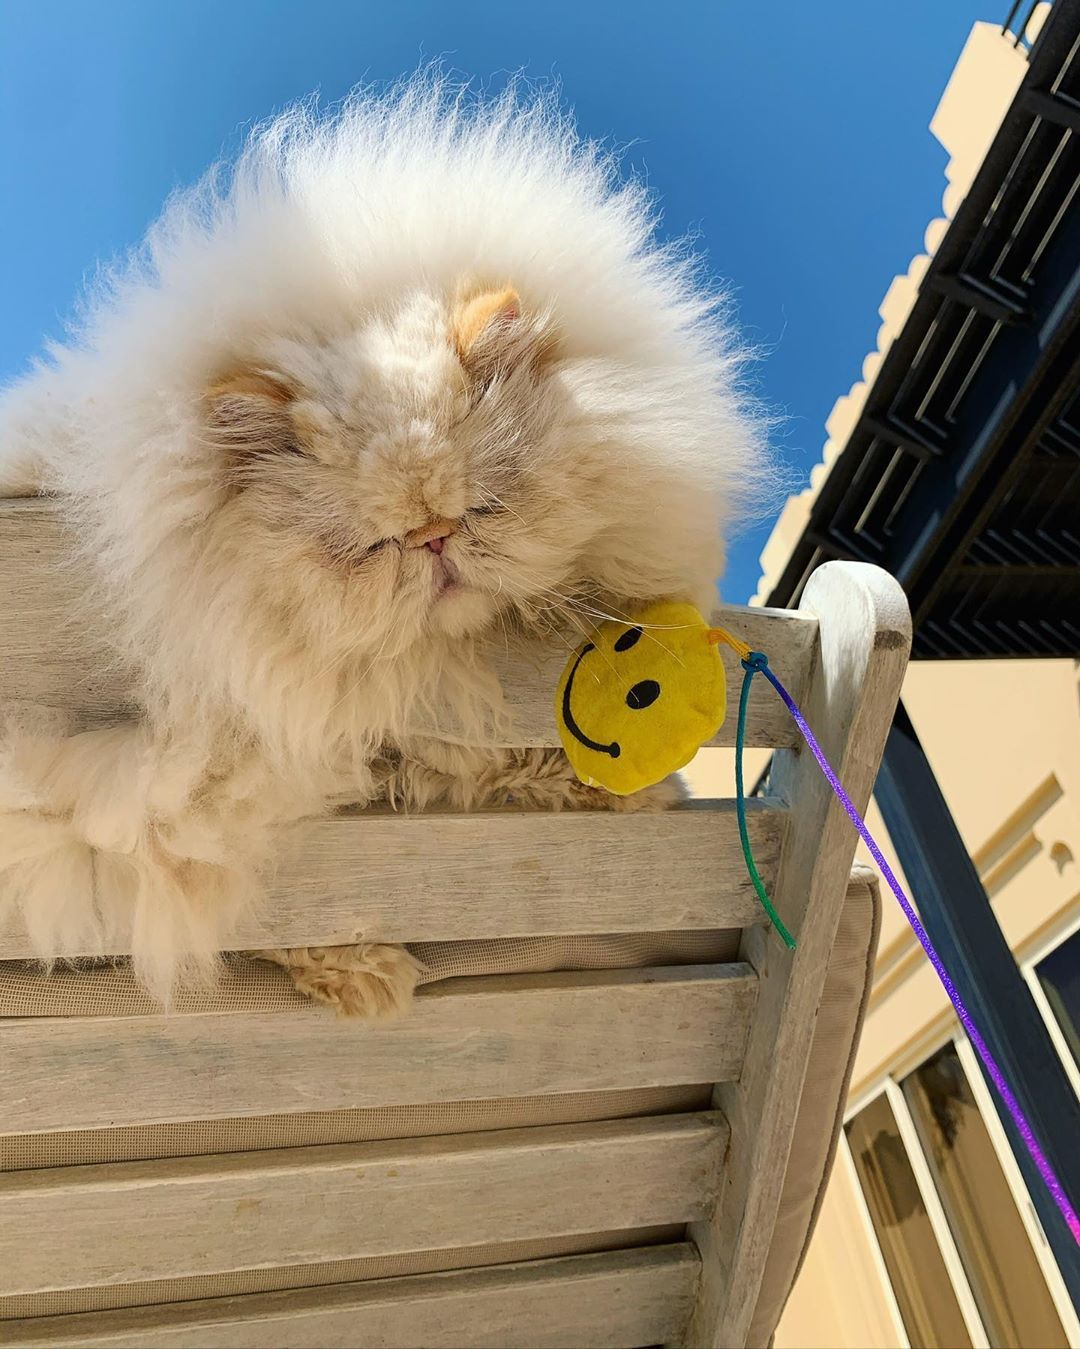 """@thezenkitty on Instagram: """"It's Monday, where's your happy face?! 😬😬😬 . . . #weeklyfluff #cats_of_instagram #cats #persiancat #persiancatsofinstagram #instamood…"""""""